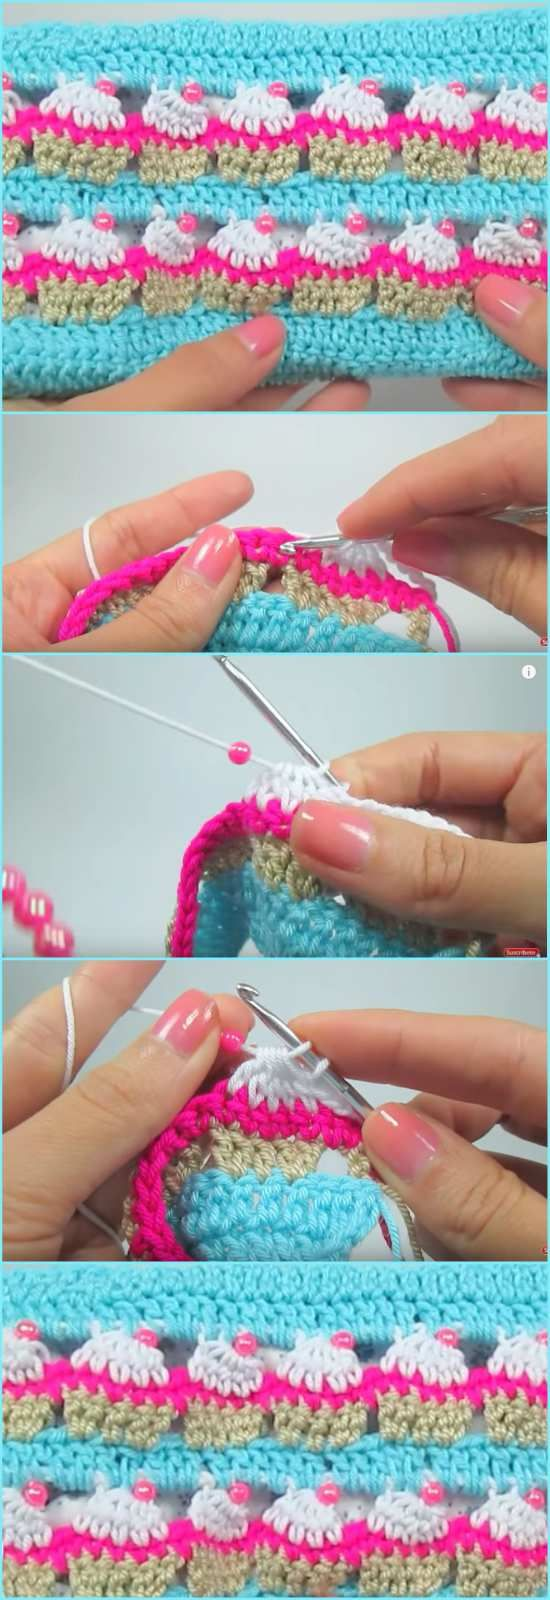 Cupcake Crochet Stitch and Cupcake Case [Free Pattern and Video Tutorial] - ONLY FREE crocheting patterns for Amigurumi, Toys, Afghans, Baby Blankets, New Stitches and Tutorials and many more!